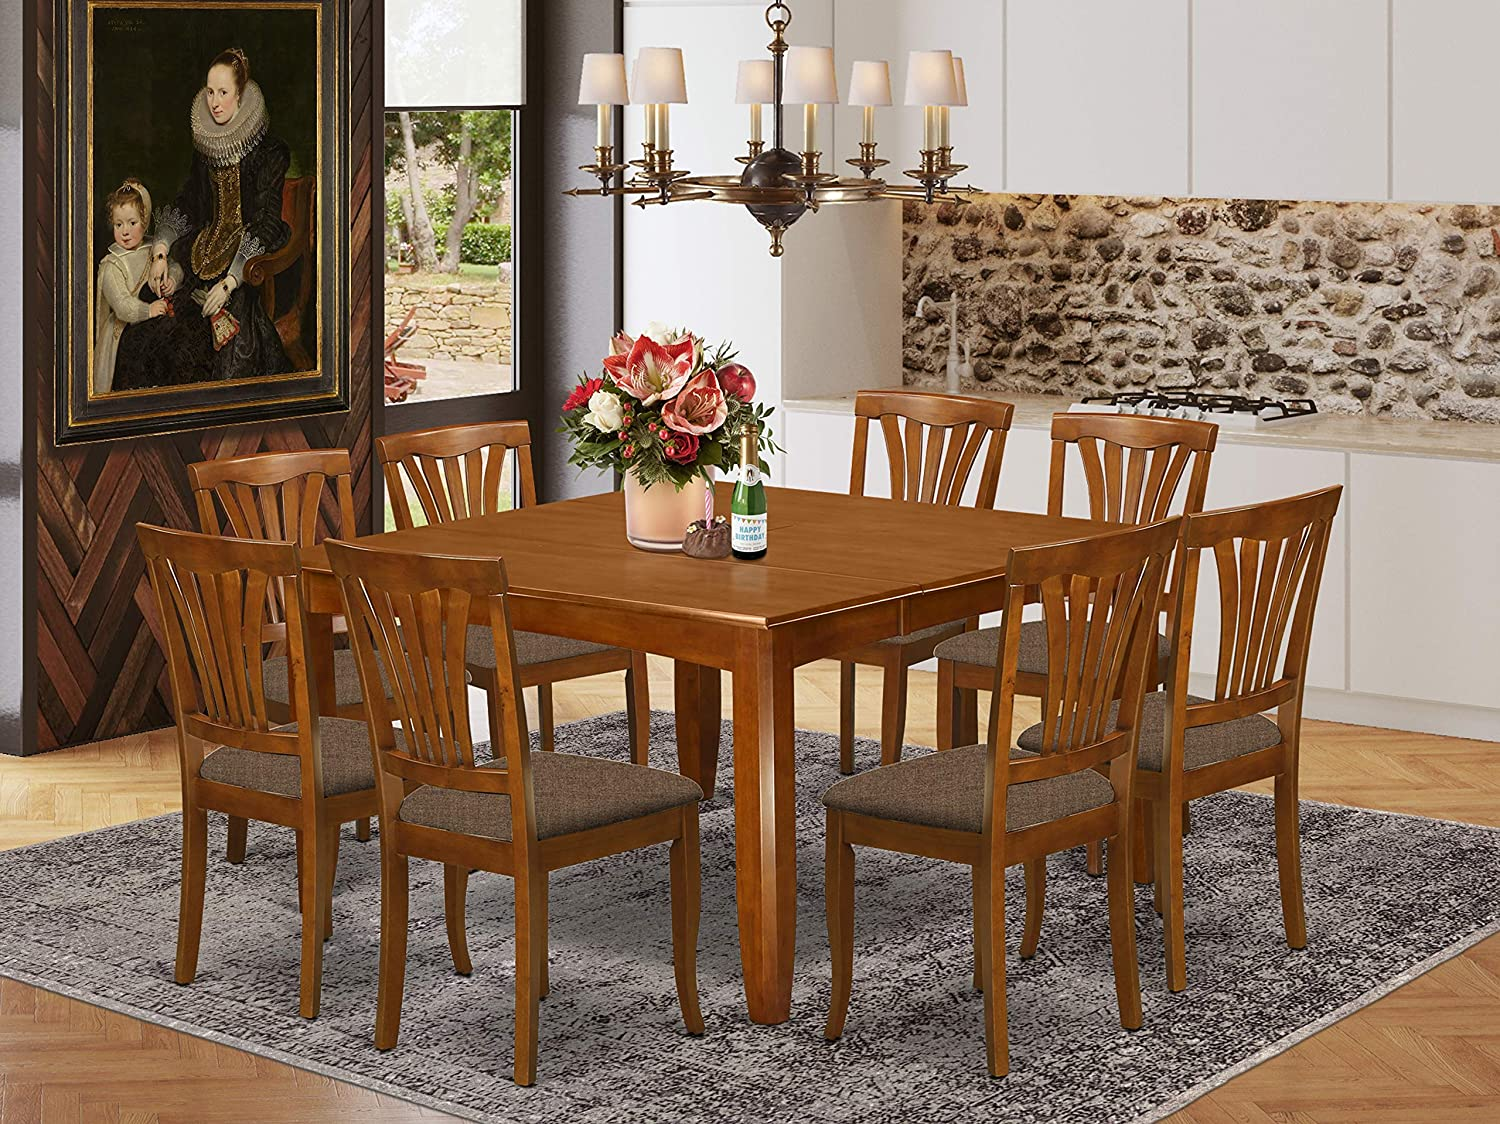 9 Pc Dining room set-Dining Table with Leaf and 8 Dinette Chairs.